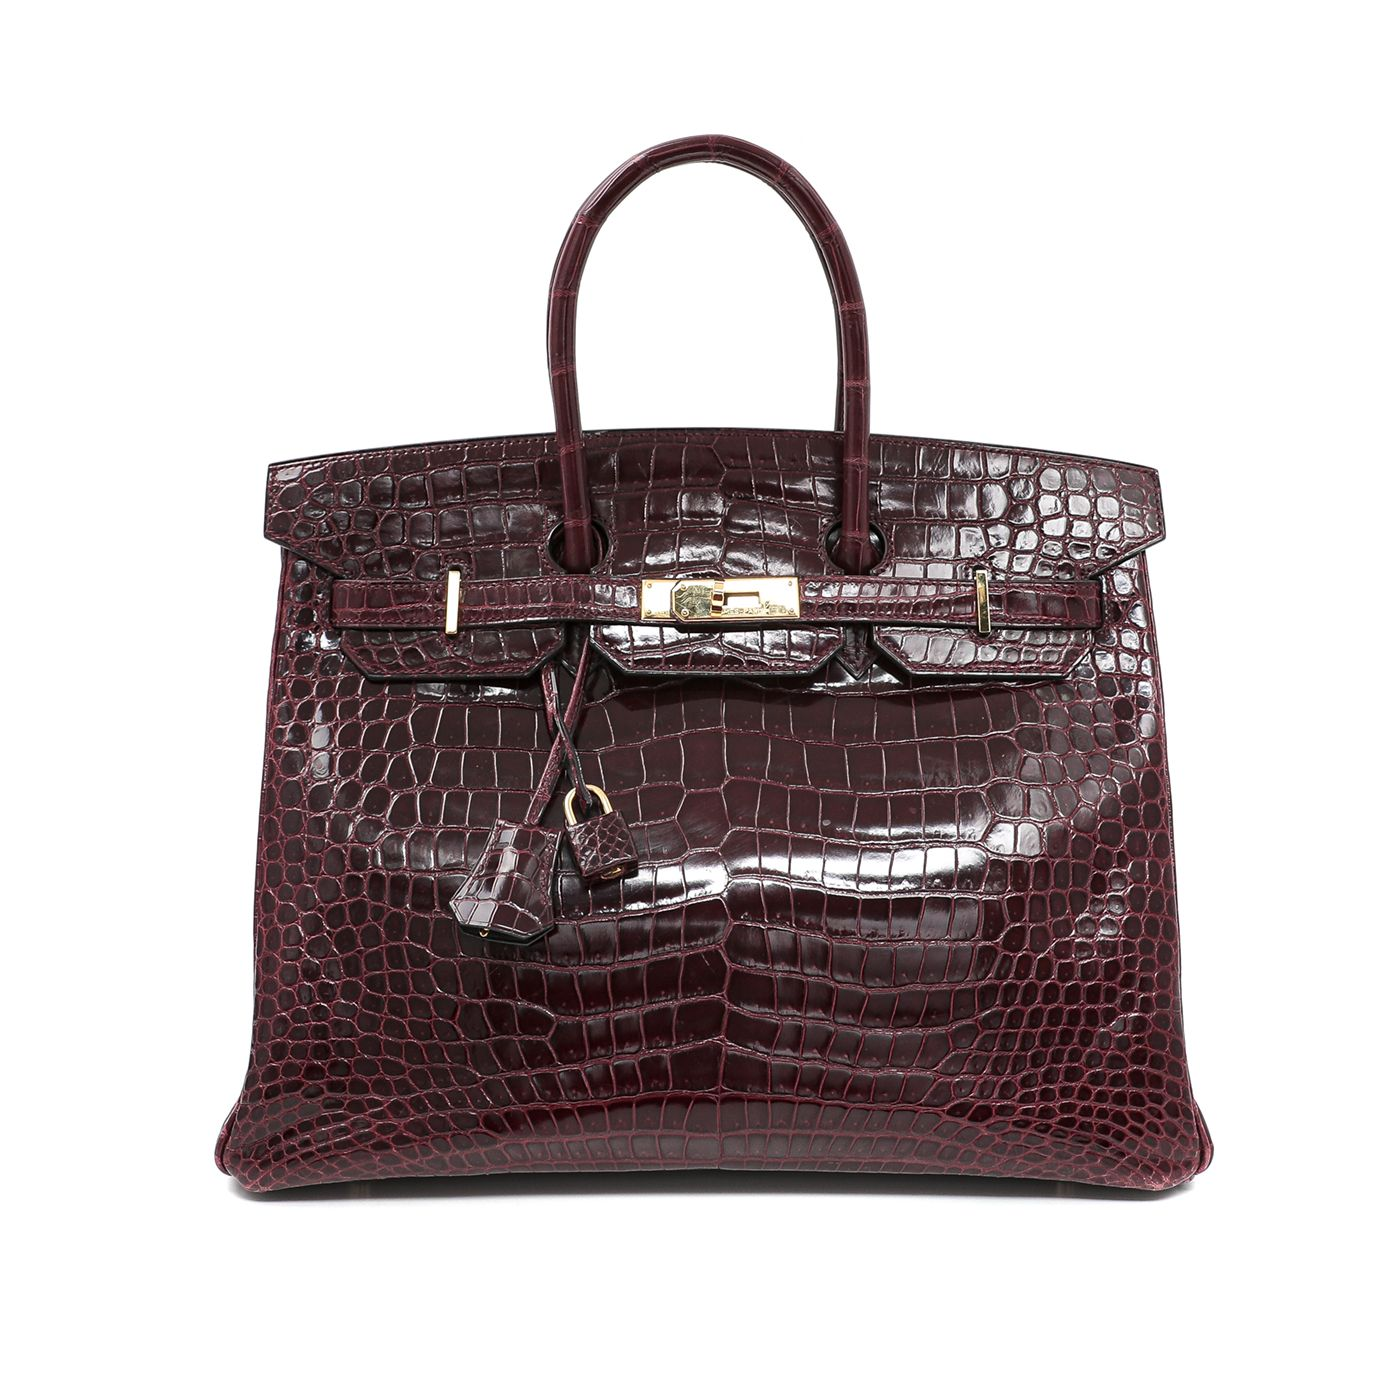 Hermes Rouge H Croco Birkin Bag 35